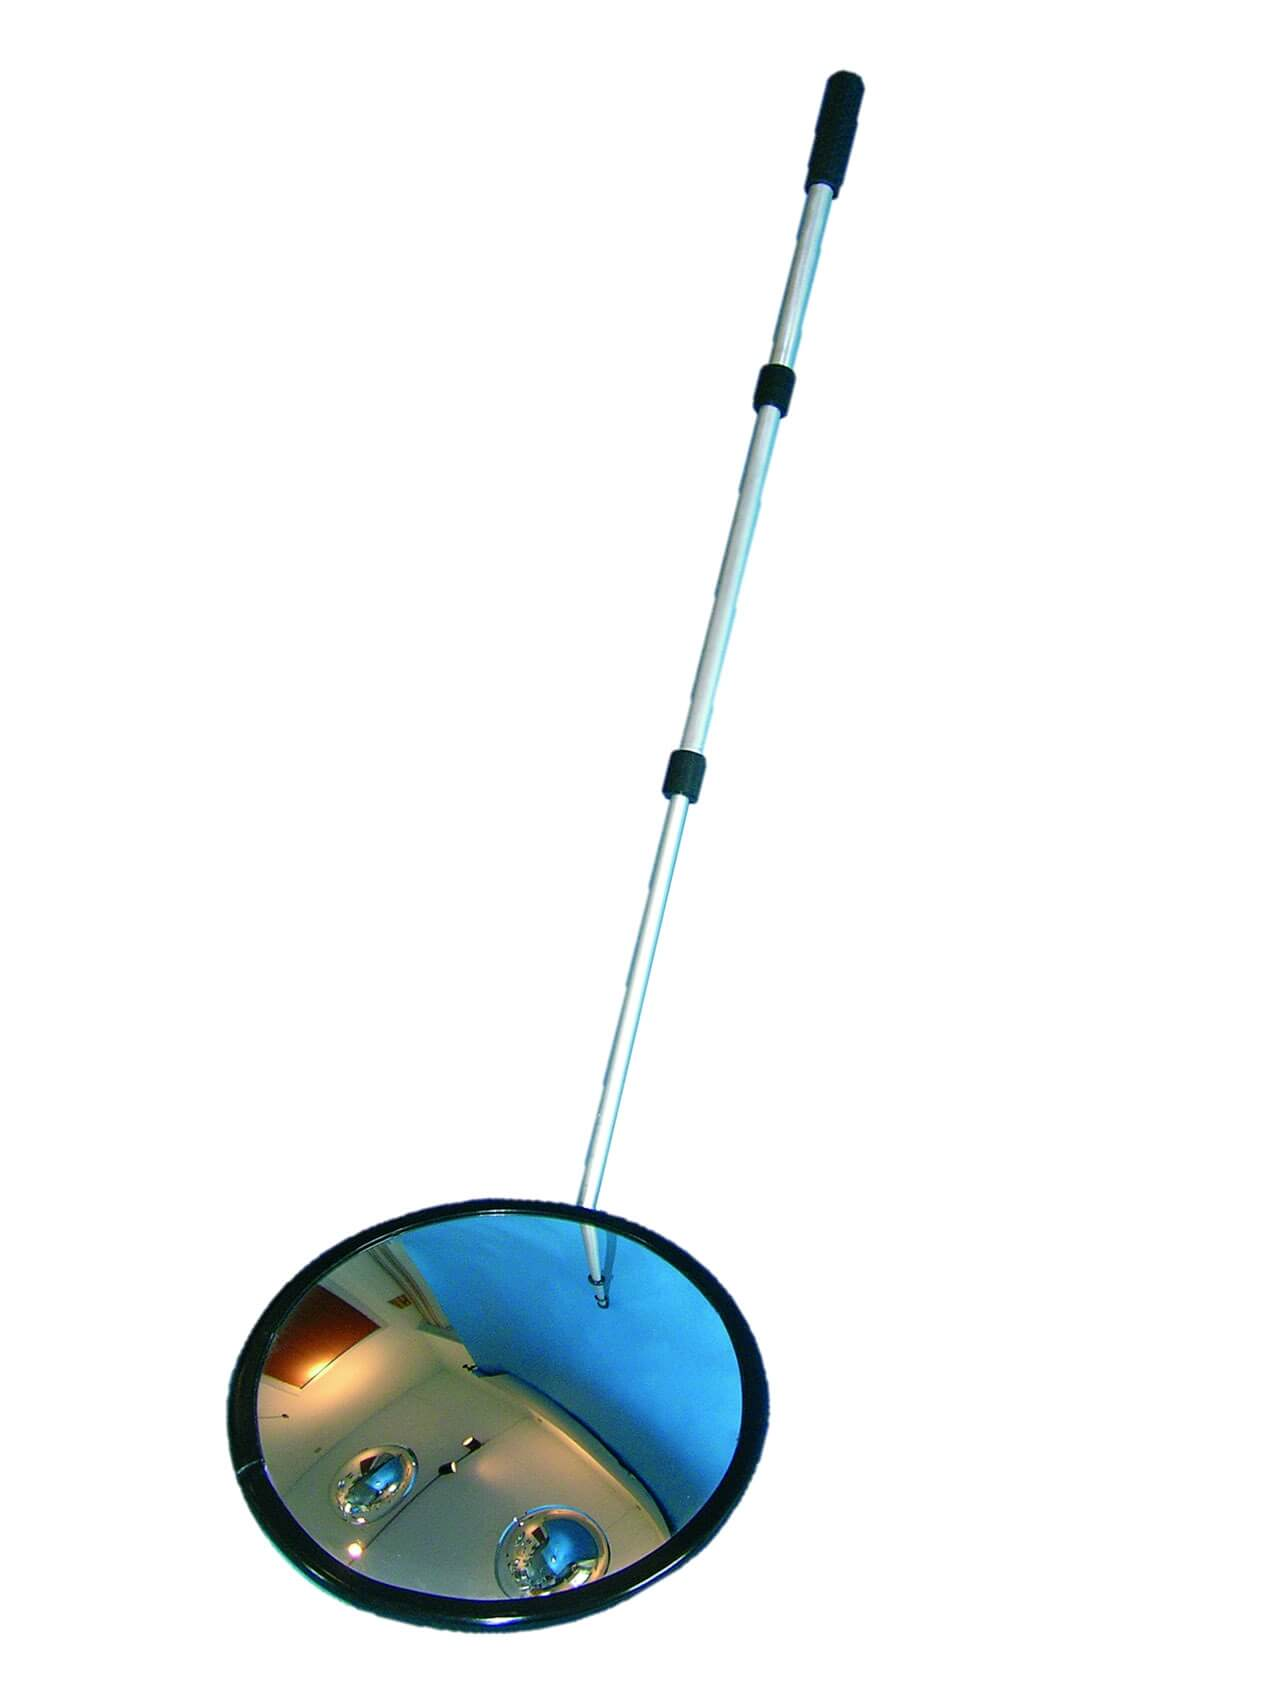 Inspection mirror 35 cm round, with wheels